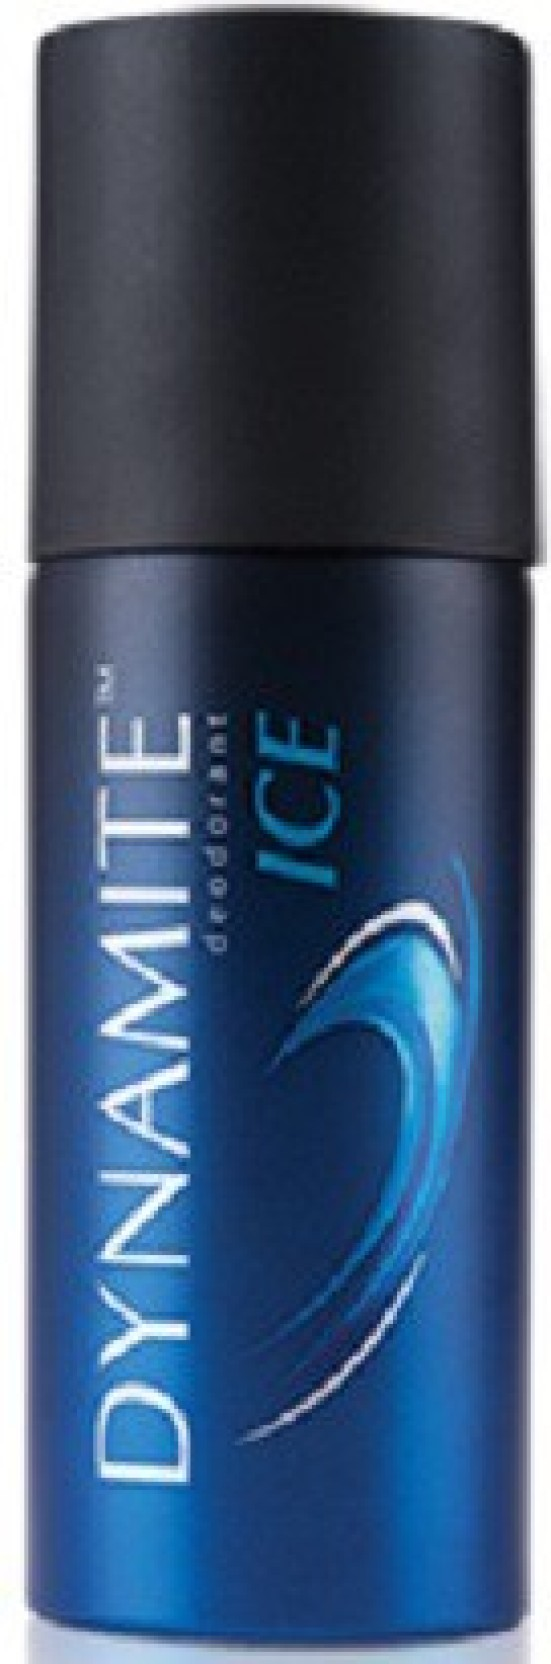 Deodorant Amway (Amway): review, choice, reviews